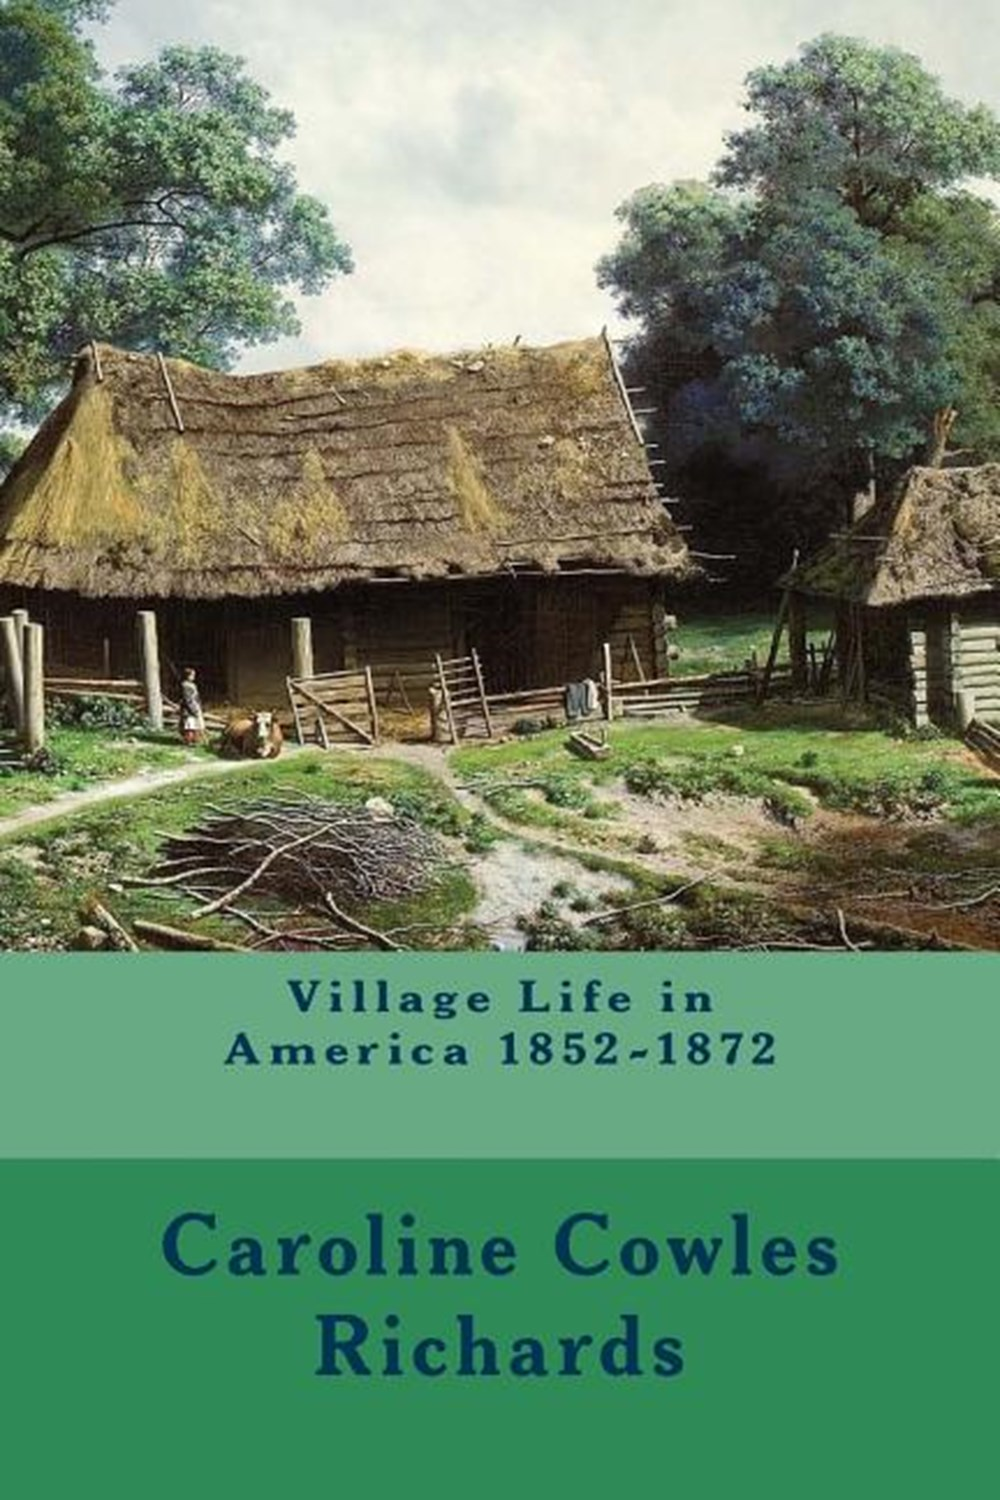 Village Life in America 1852-1872